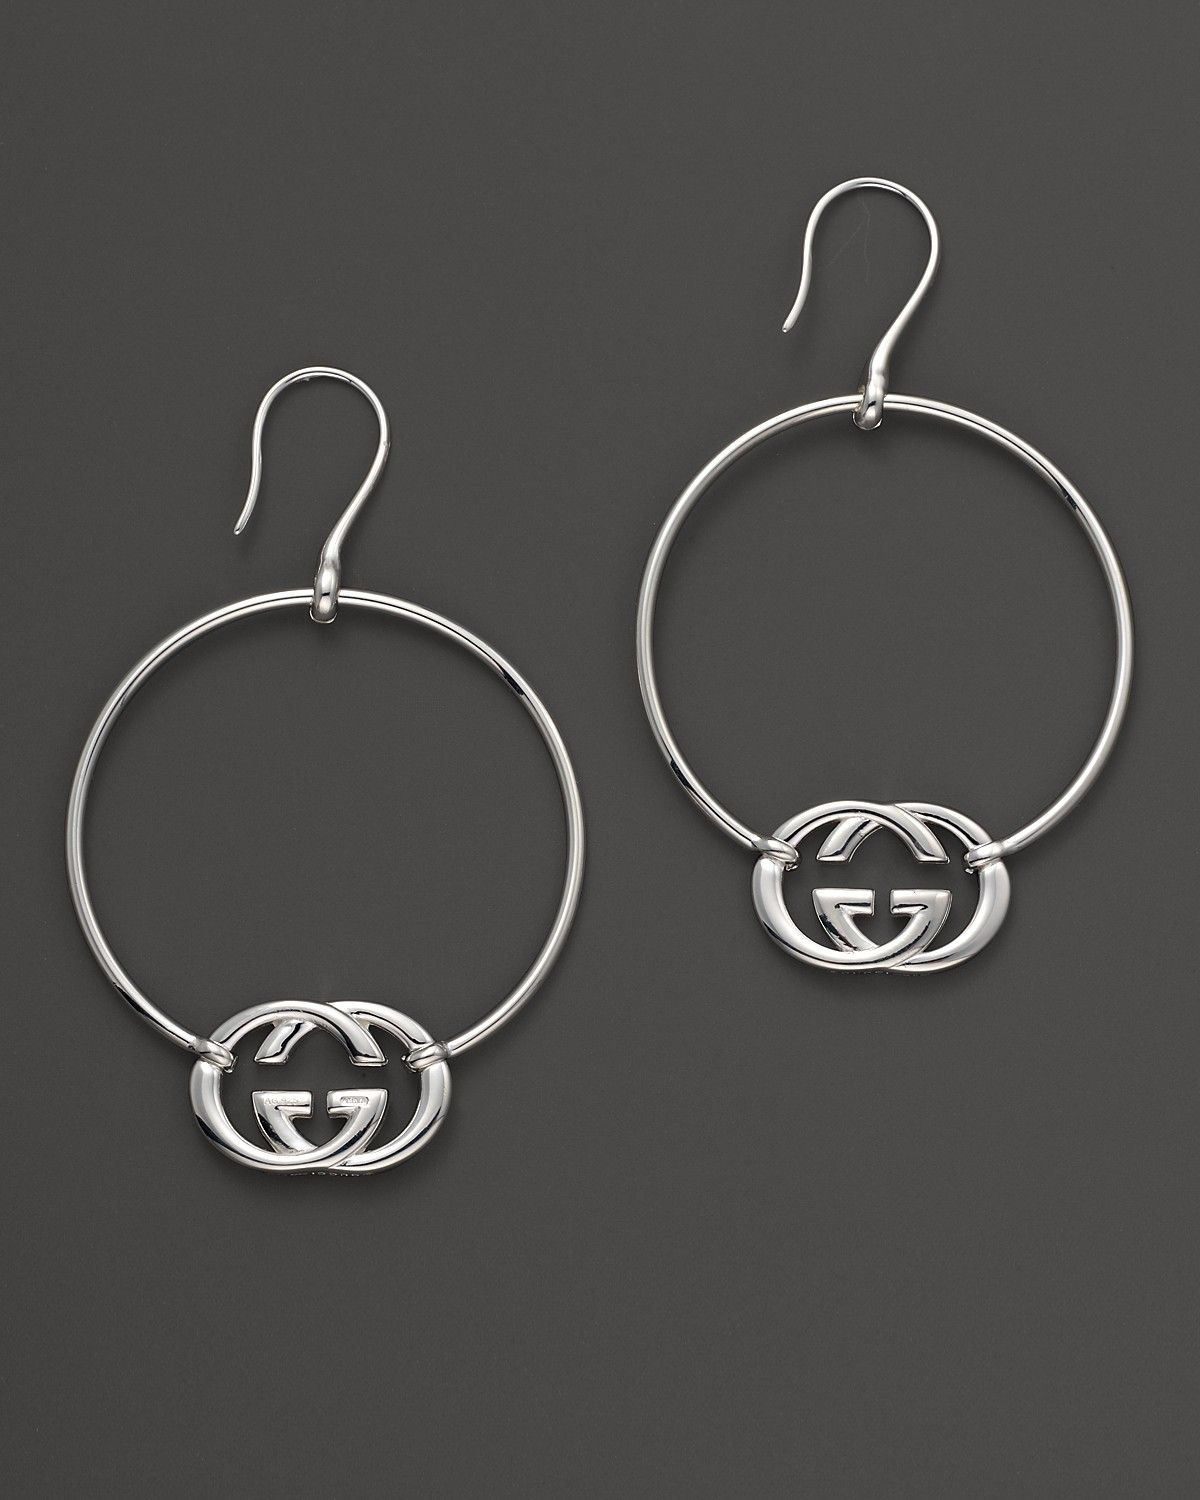 Gucci Sterling Silver Britt Hoop Earrings Bloomingdale S Online Earrings Earrings Hoop Earrings